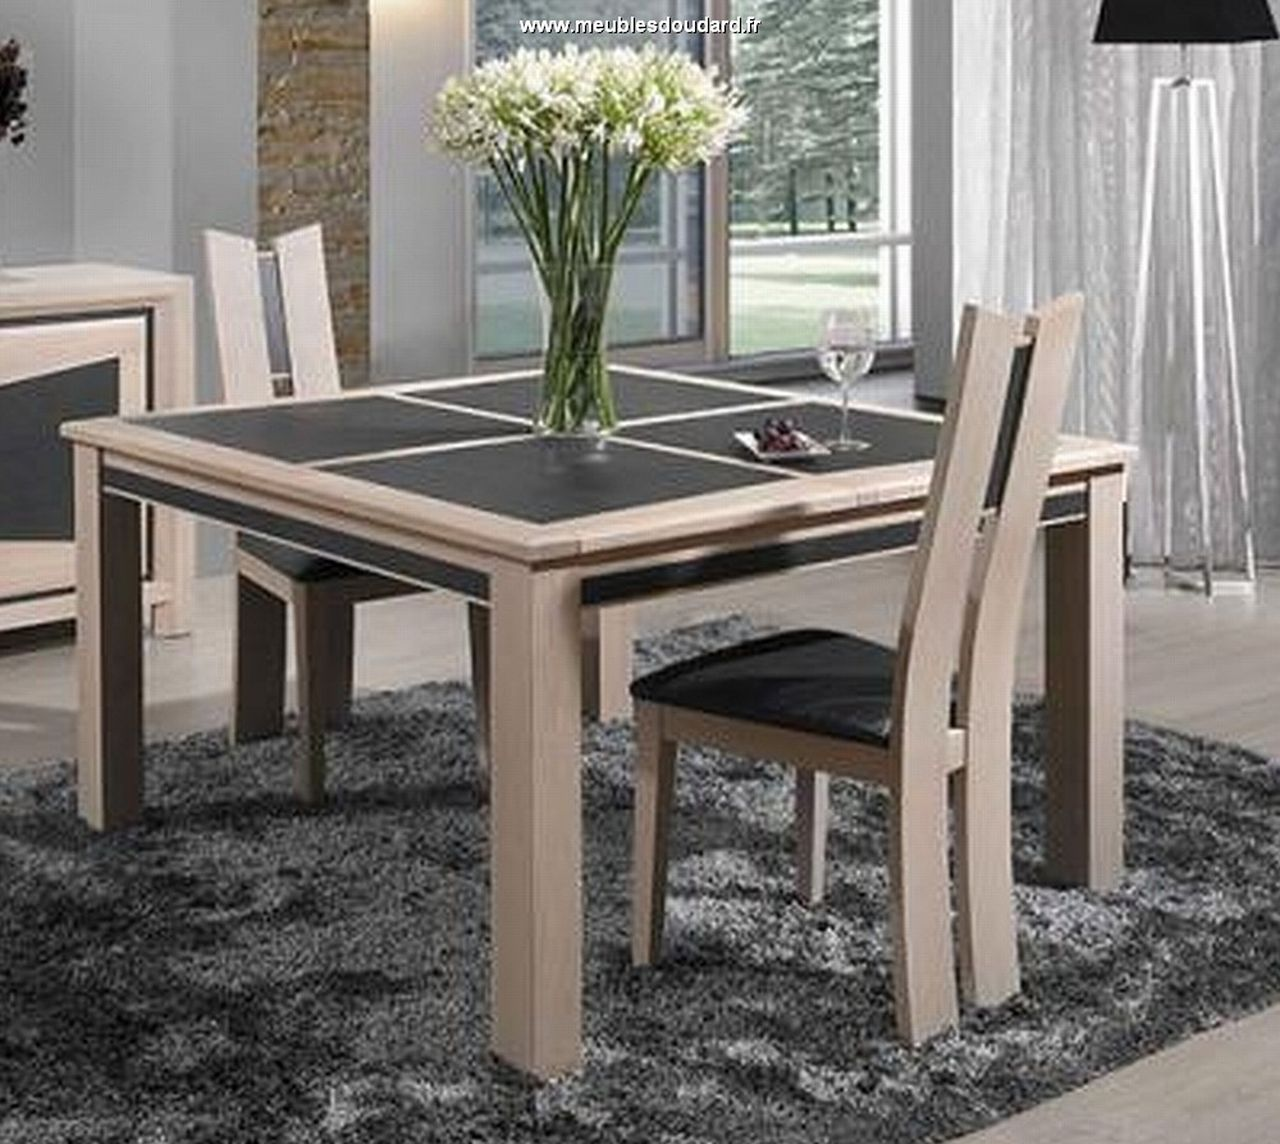 Table carr e dessus c ramique for Table exterieure carree 8 personnes